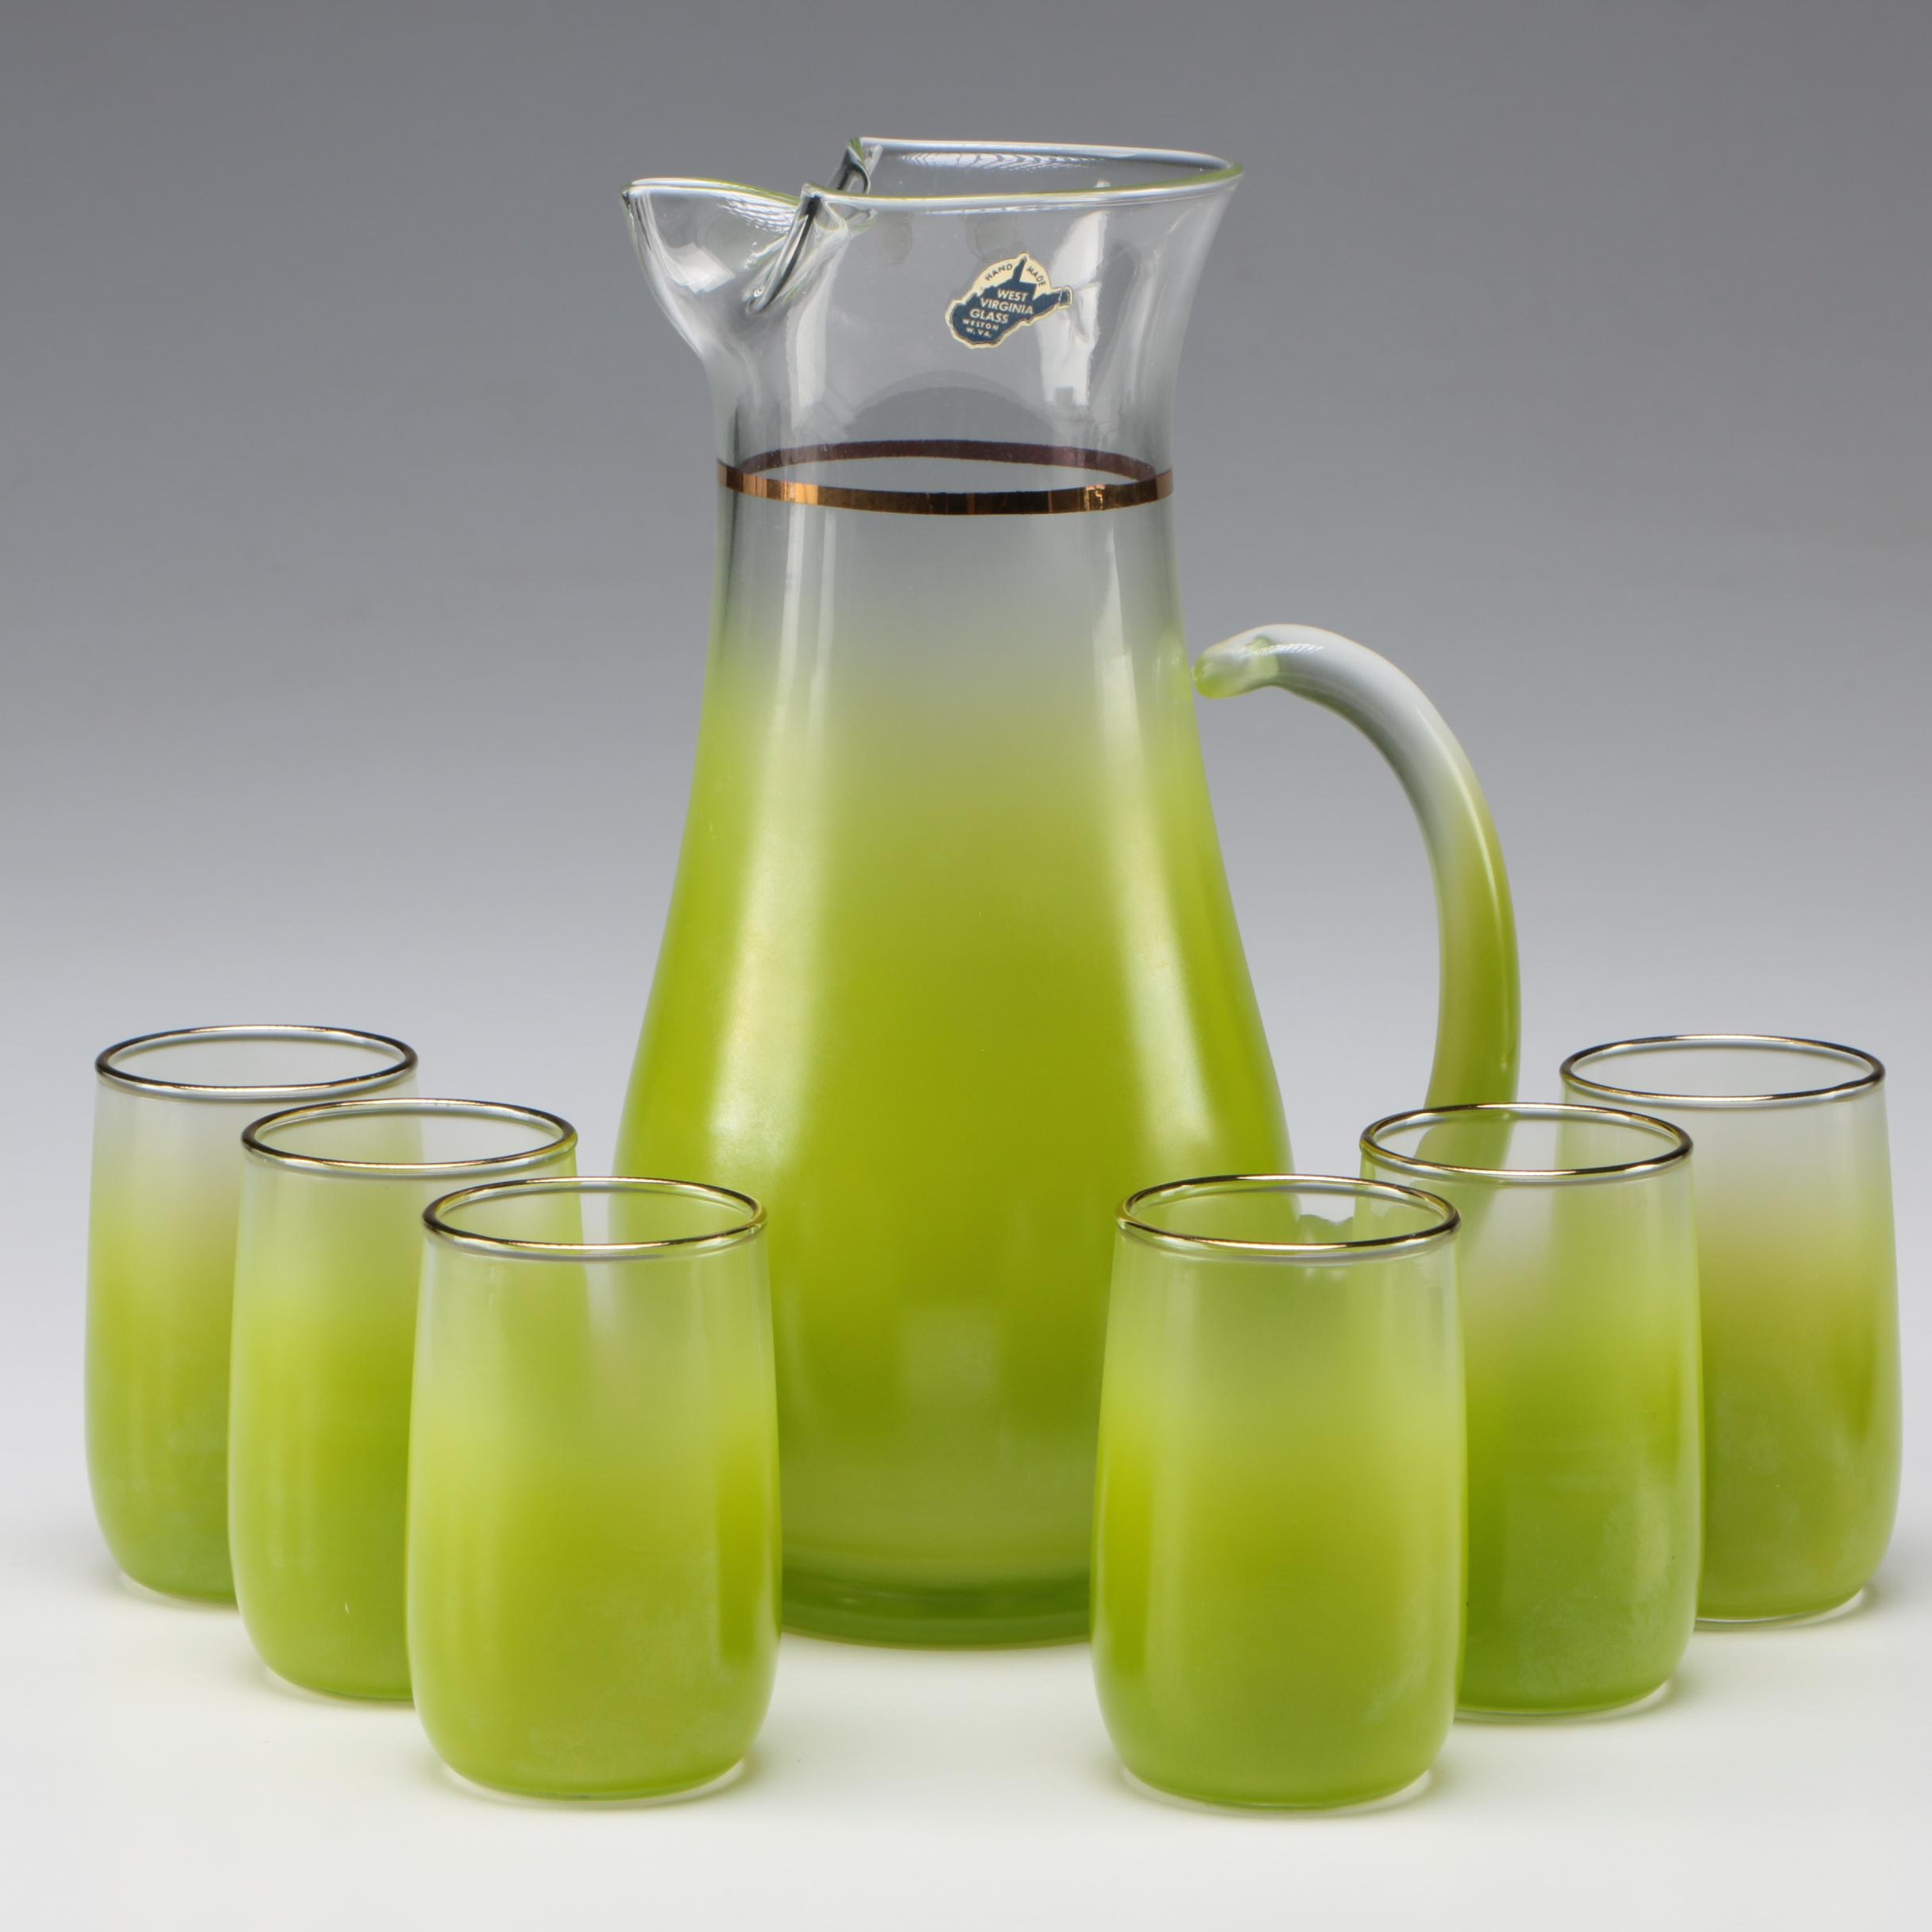 West Virginia Glass Green Glass Pitcher and Glasses Set, Vintage